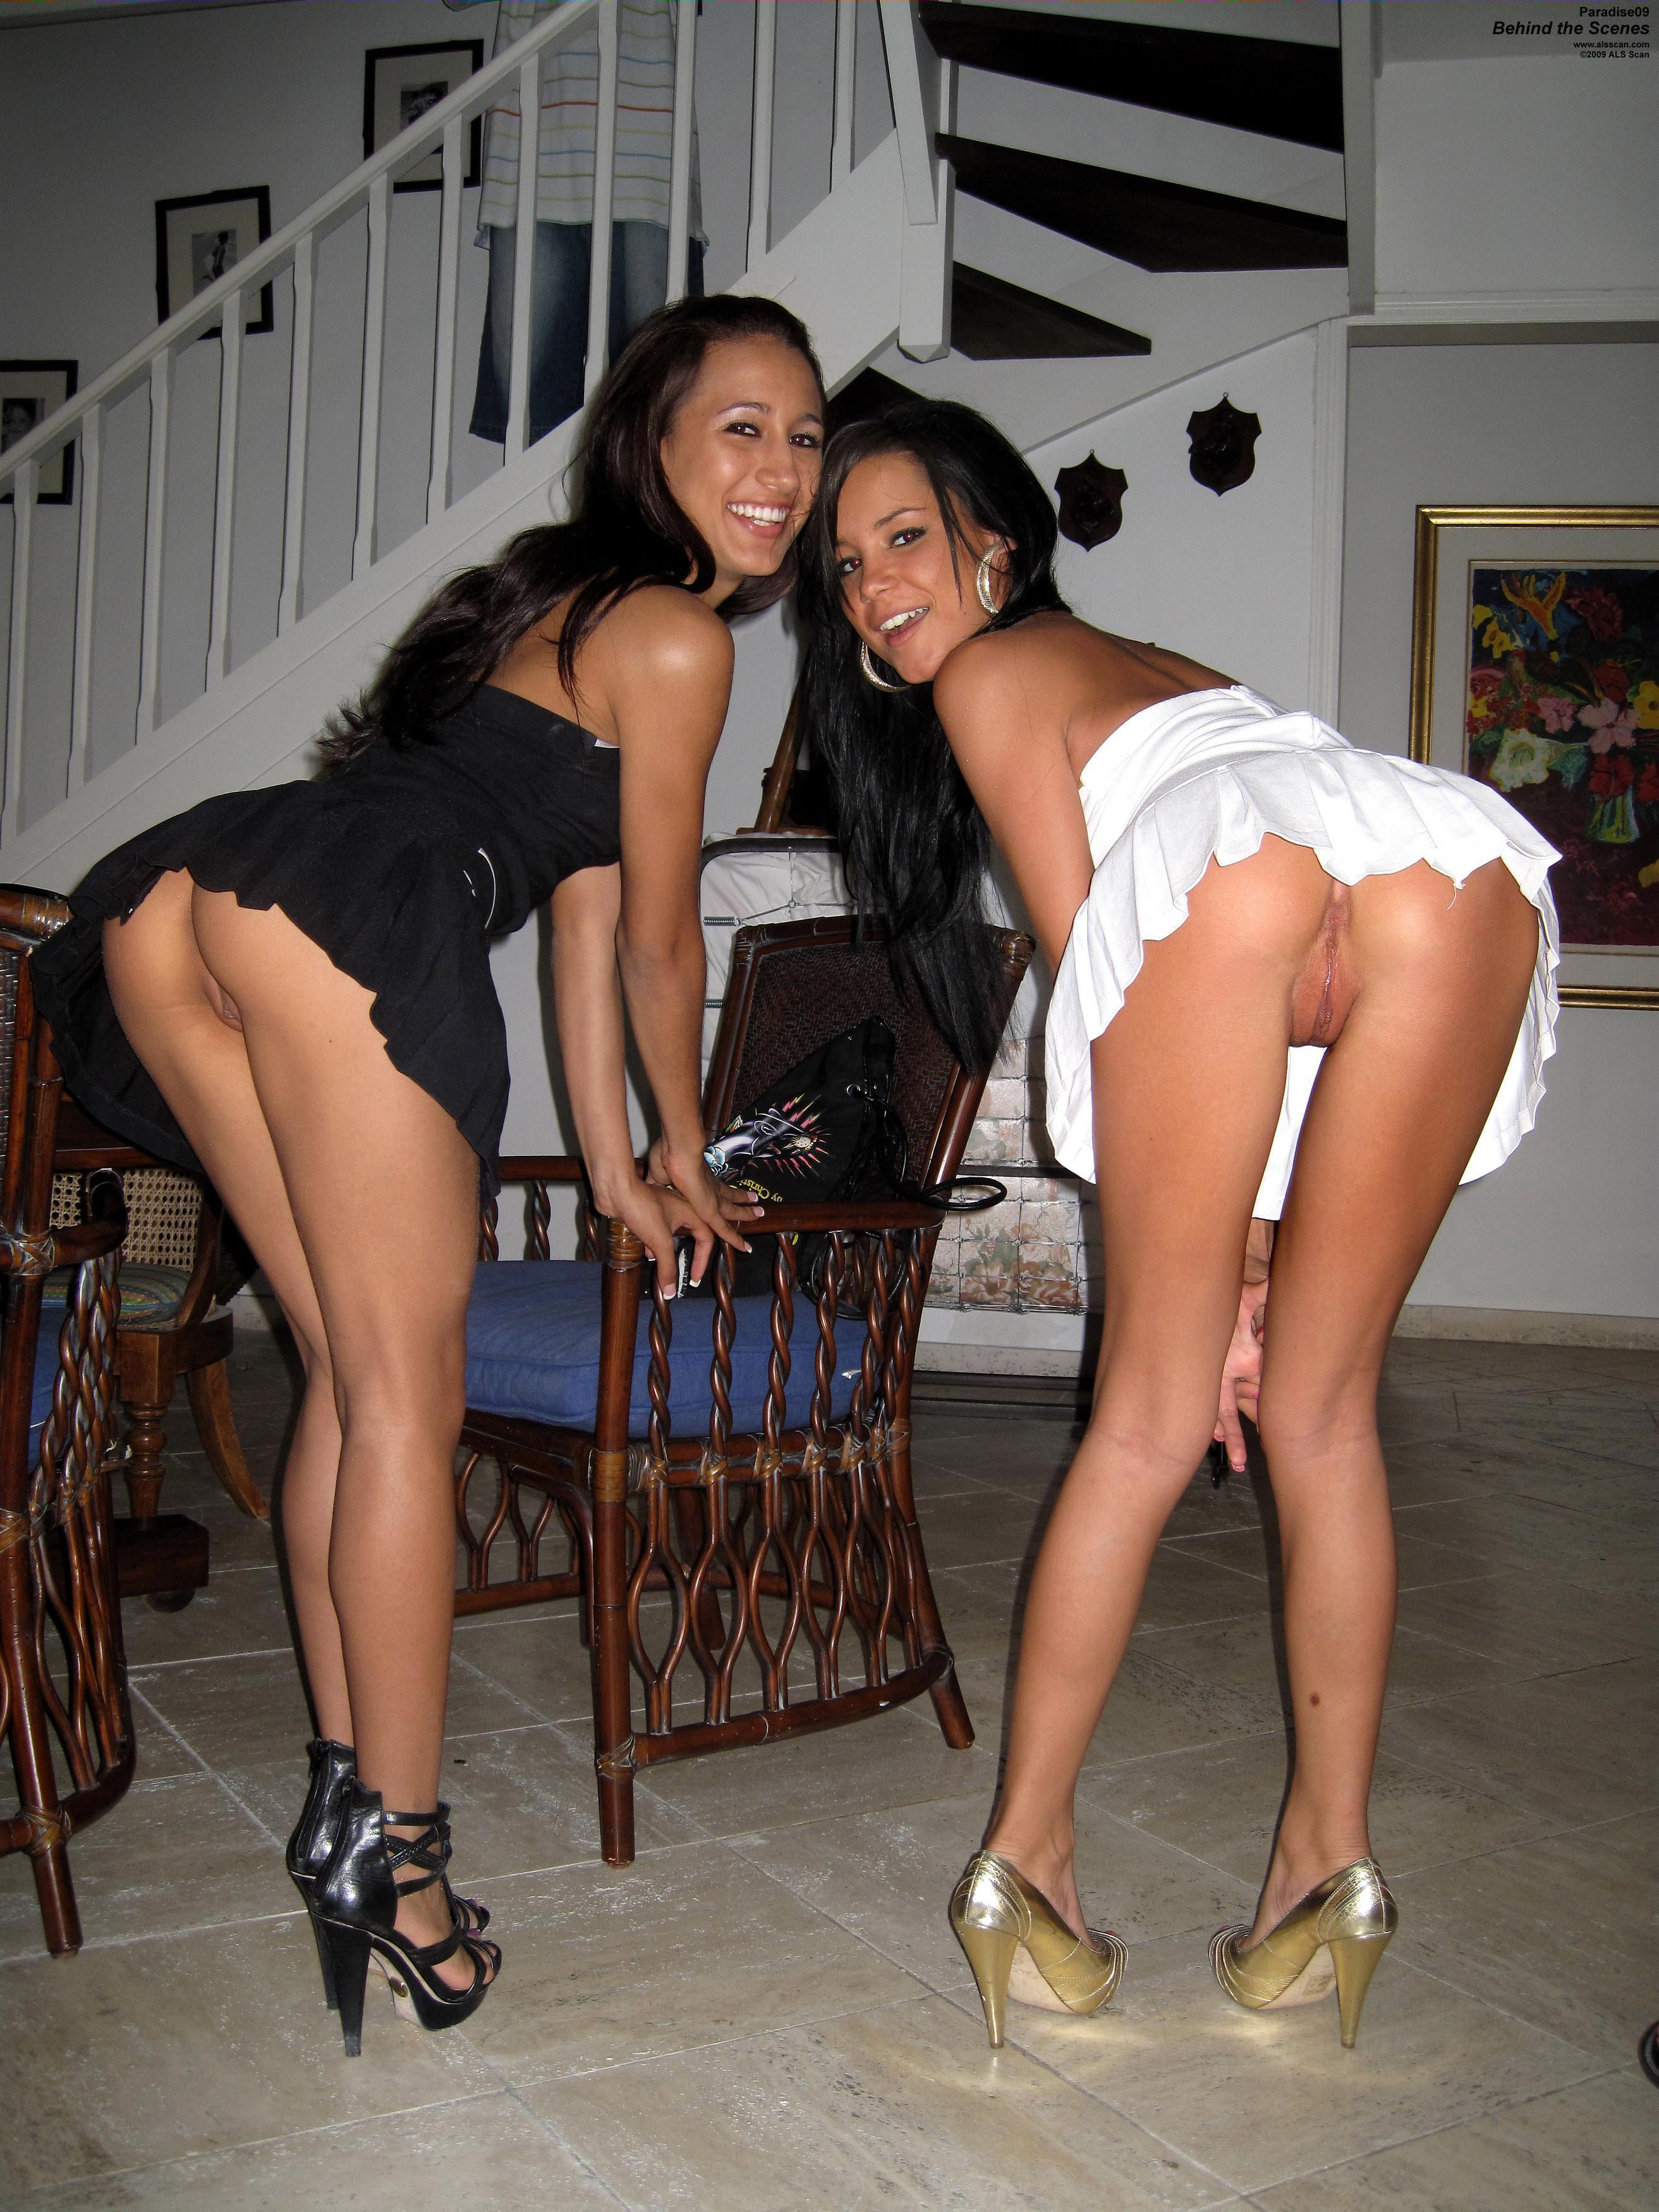 white cock the love of ebony pussy #teen #teens #sexy #idfuckthemhard #whichonefirst #theywantit #shortdress #ass #pussy #bentover #Amateur #pickone #upskirt